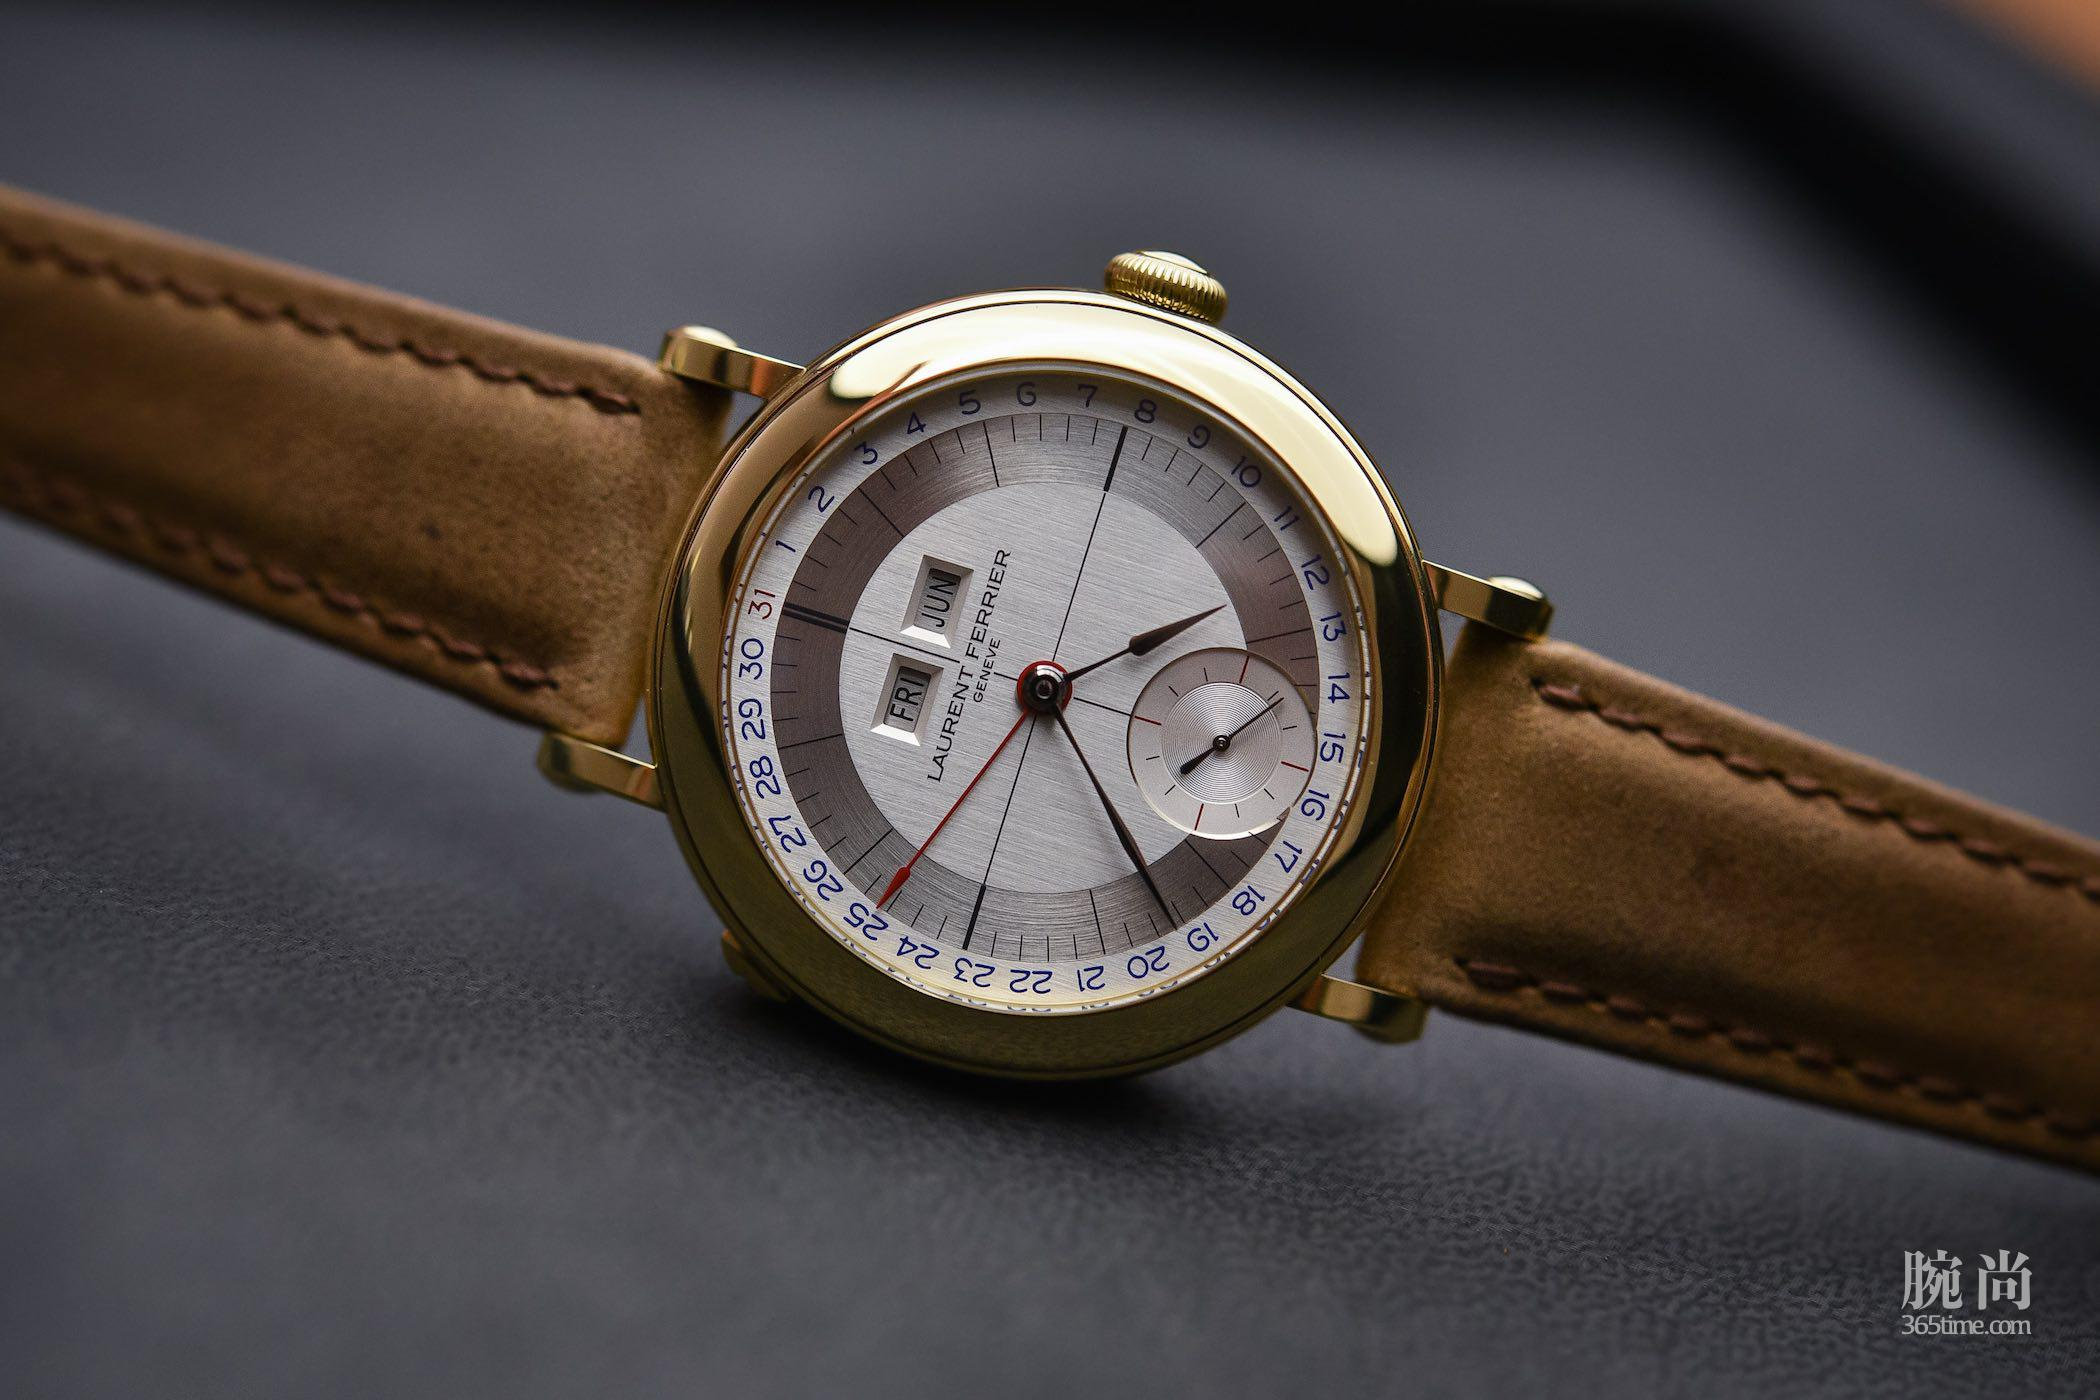 Laurent-Ferrier-Galet-Annual-Calendar-School-Piece-Pale-Yellow-Gold-SIHH-2018-5.jpg